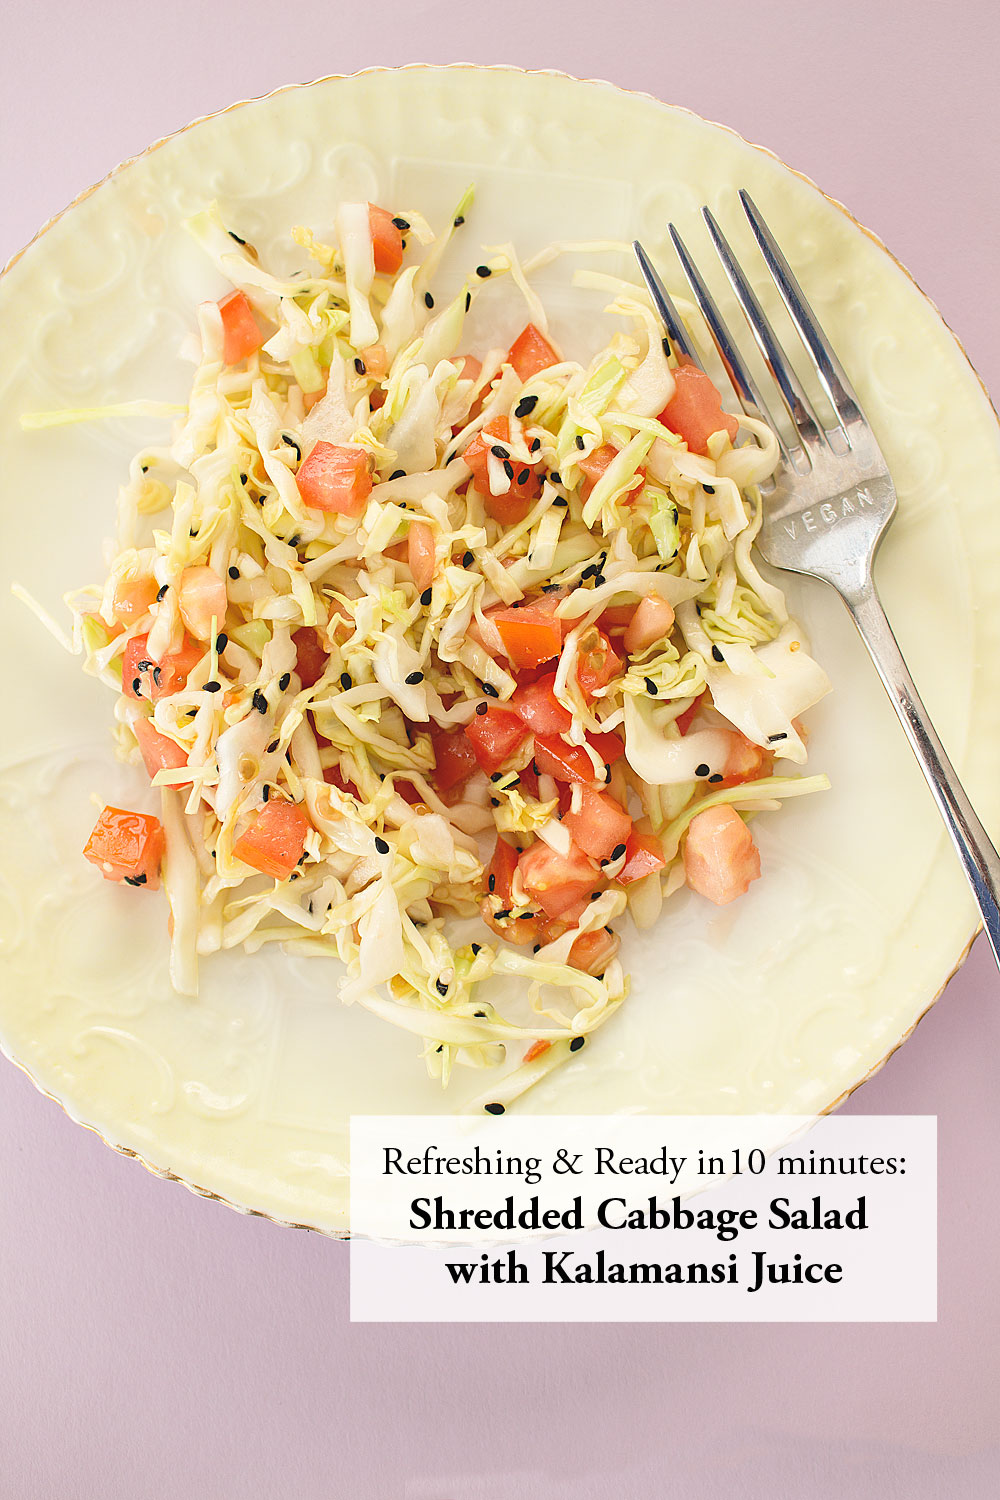 shredded-cabbage-salad-with-kalamansi-juice-astigvegan